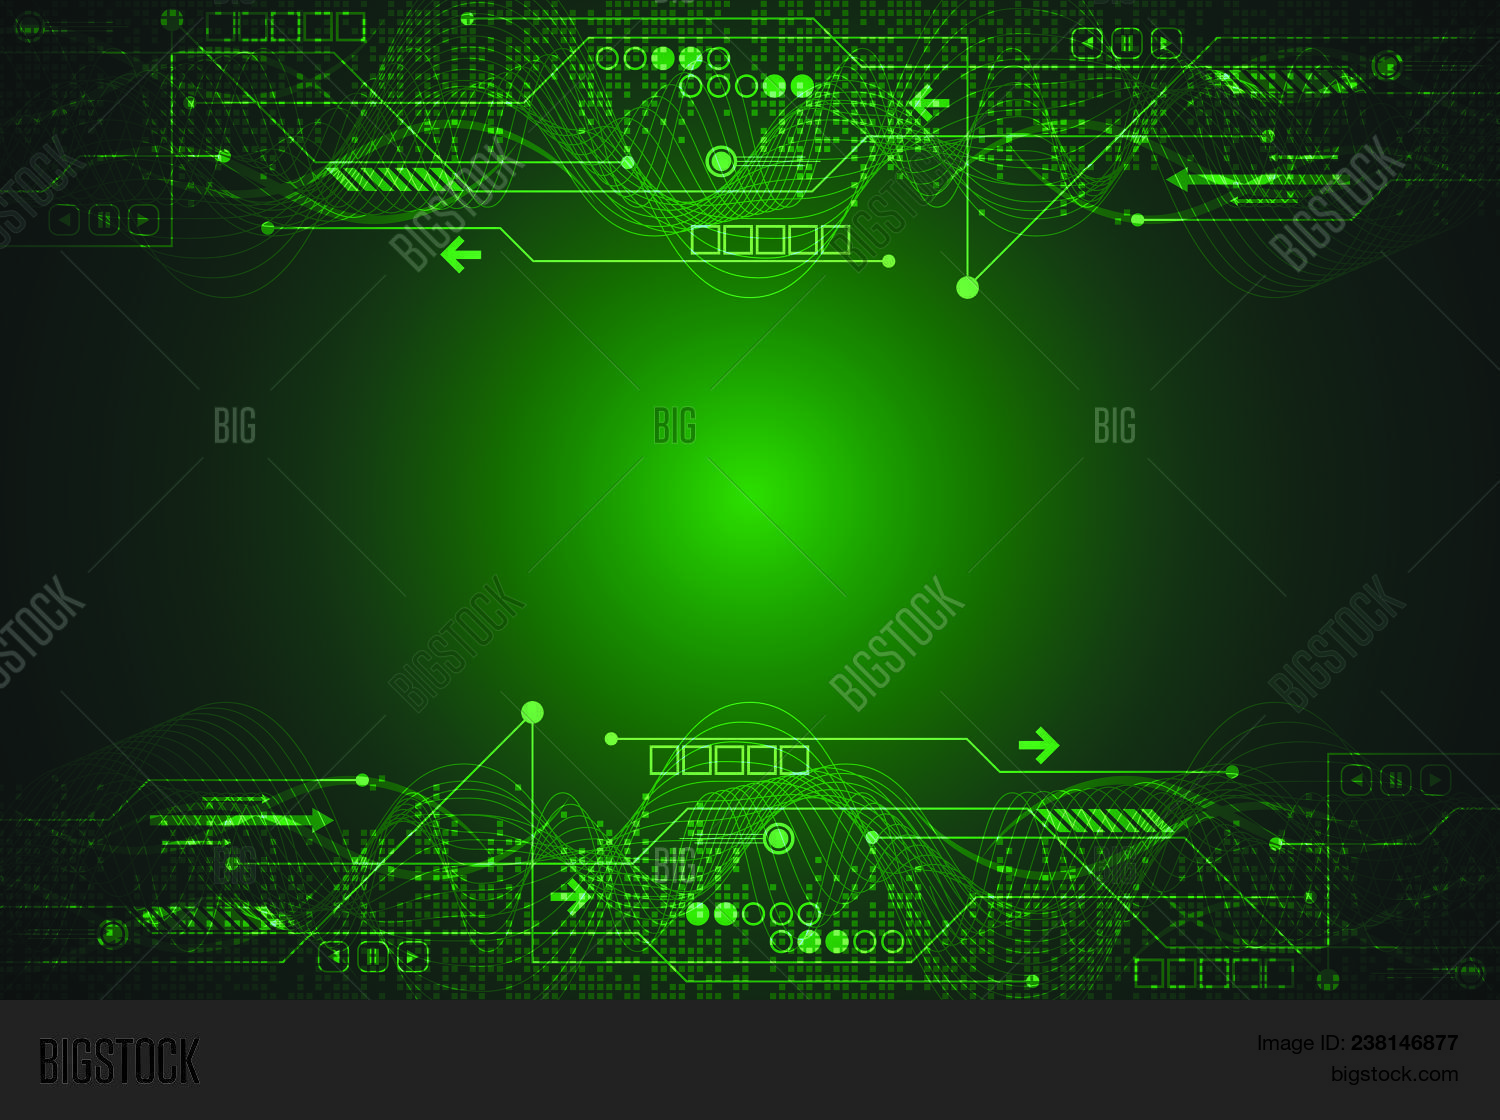 Electronic Circuit Vector Photo Free Trial Bigstock Basic Of Design On A Dark Green Background